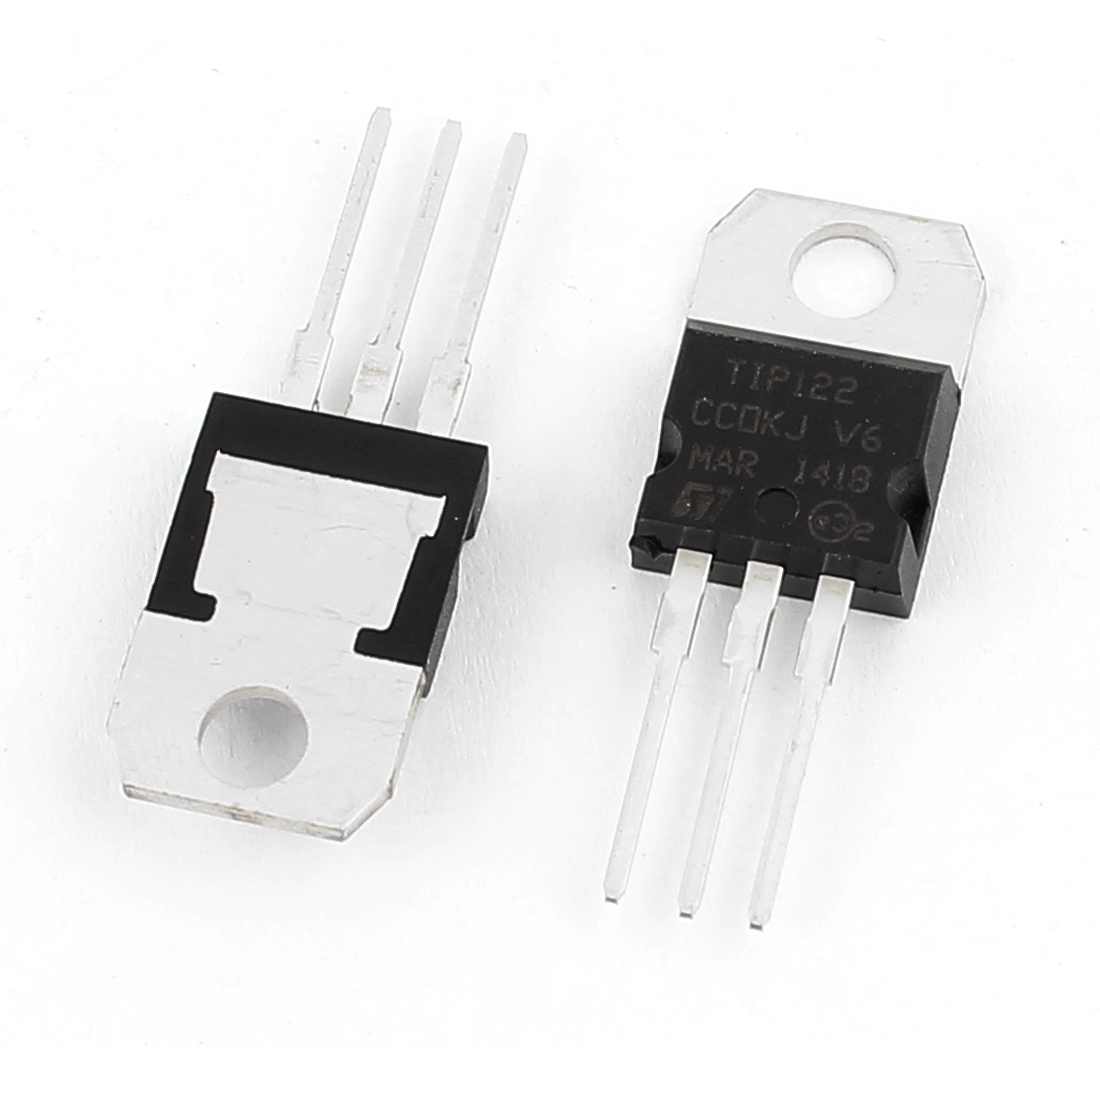 2 Pcs TIP122 Package TO-220 3 Terminals Power Transistors 100V 5A